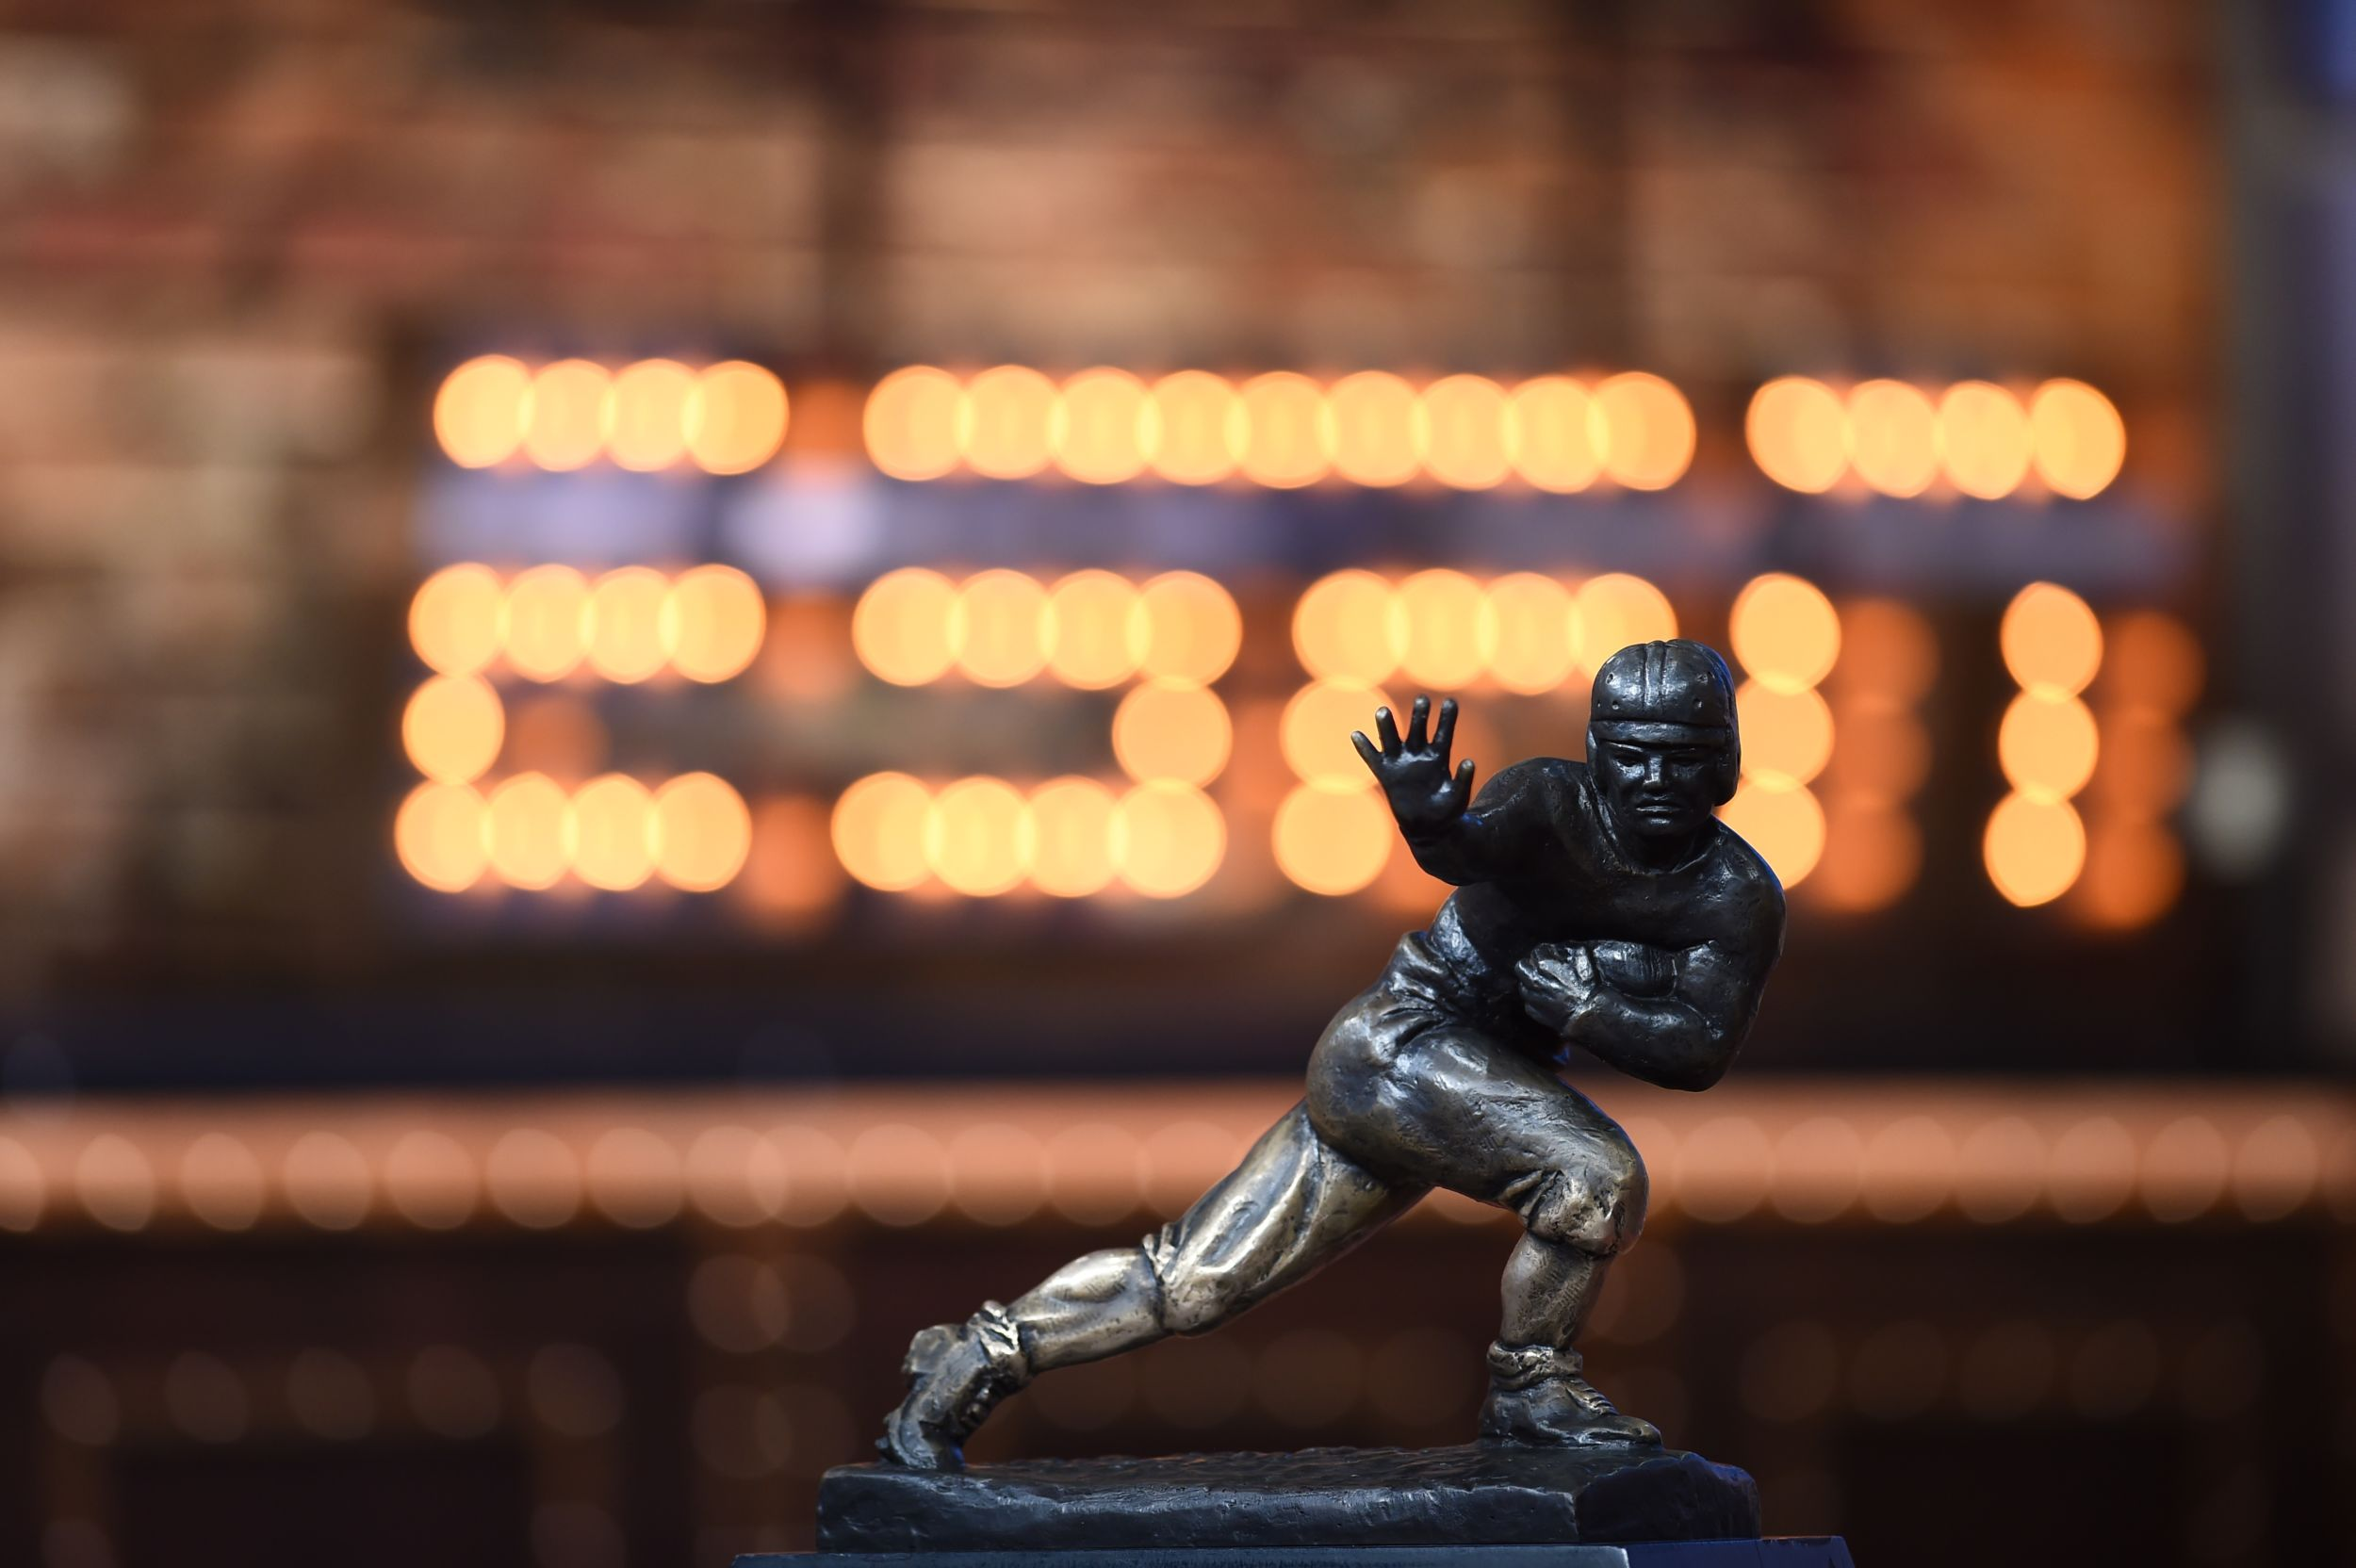 ESPN Reaches New Multi-Year Agreement with The Heisman Trust – The 86th Annual Heisman Trophy Ceremony to Air January 5